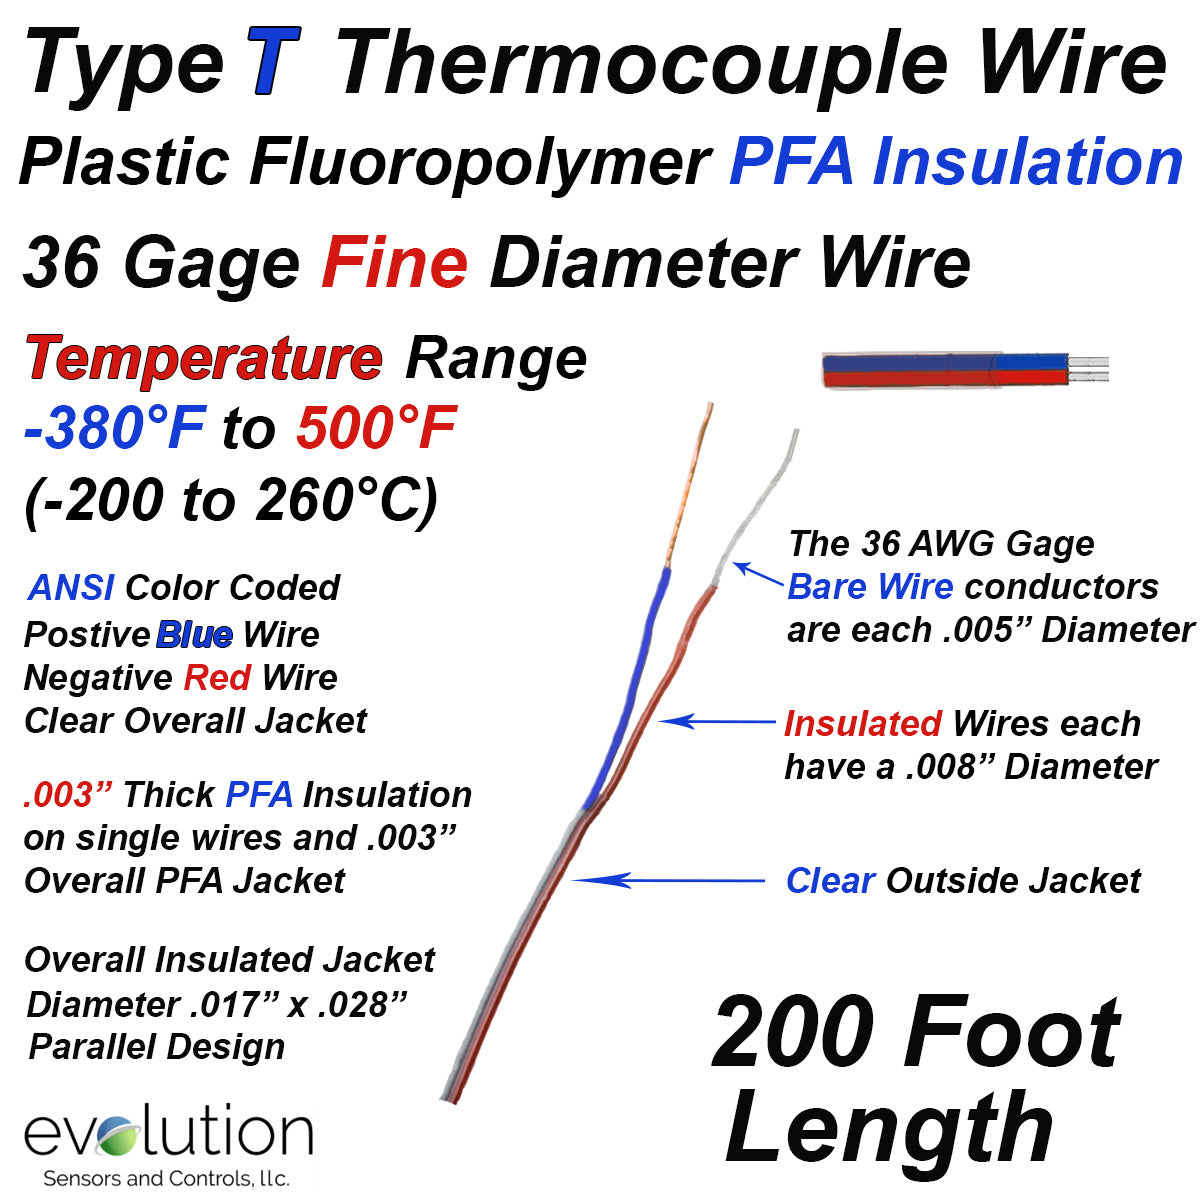 Thermocouple wire diameters data wiring thermocouple wire type t 36 gage pfa insulated 200 ft long rh evosensors com thermocouple wire gauge thermocouple wire color codes greentooth Choice Image